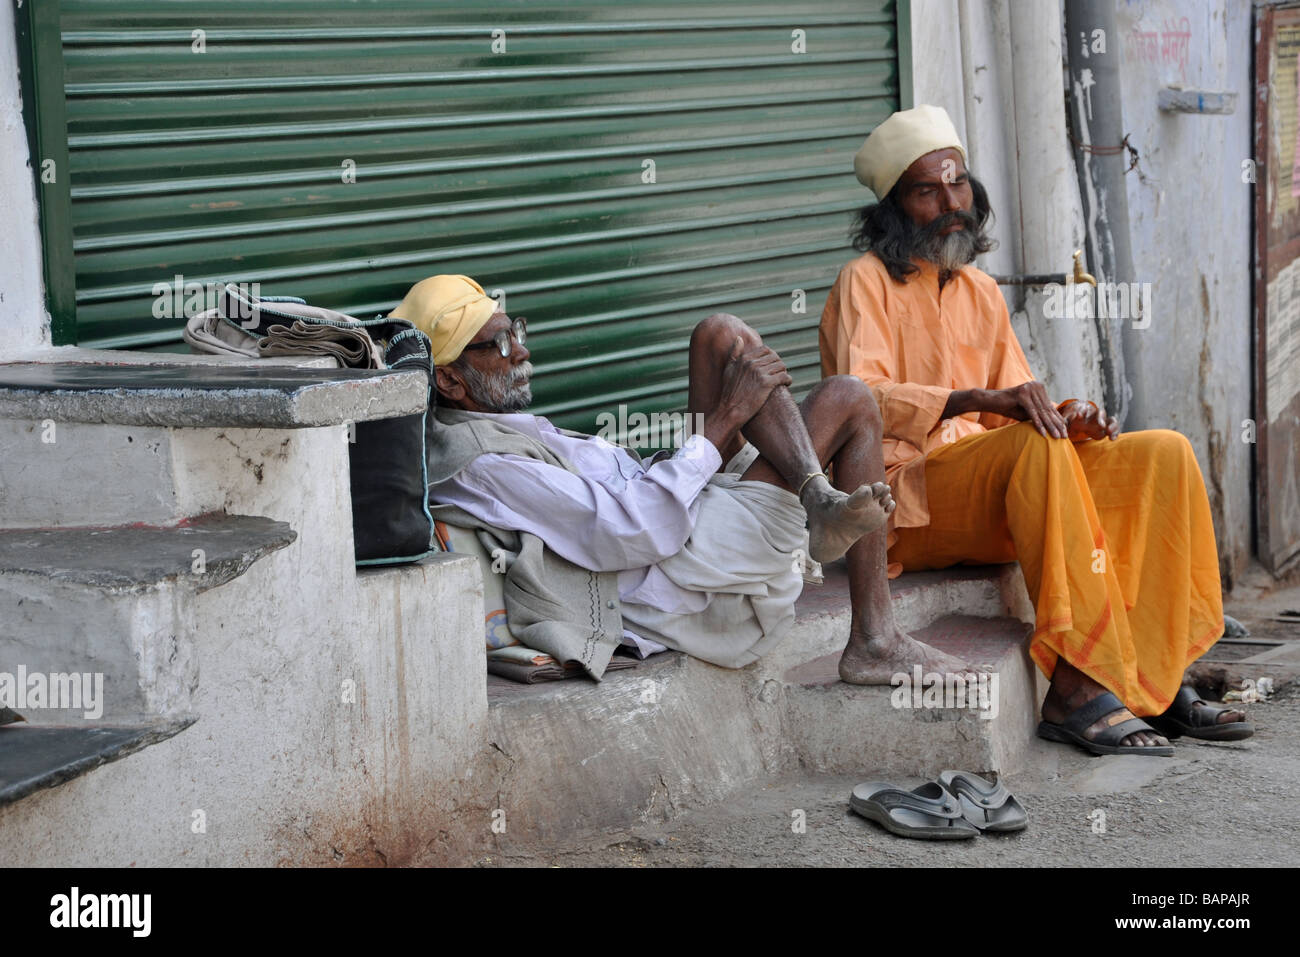 An old man sitting companionably with a Sadhu in Udaipur, India - Stock Image